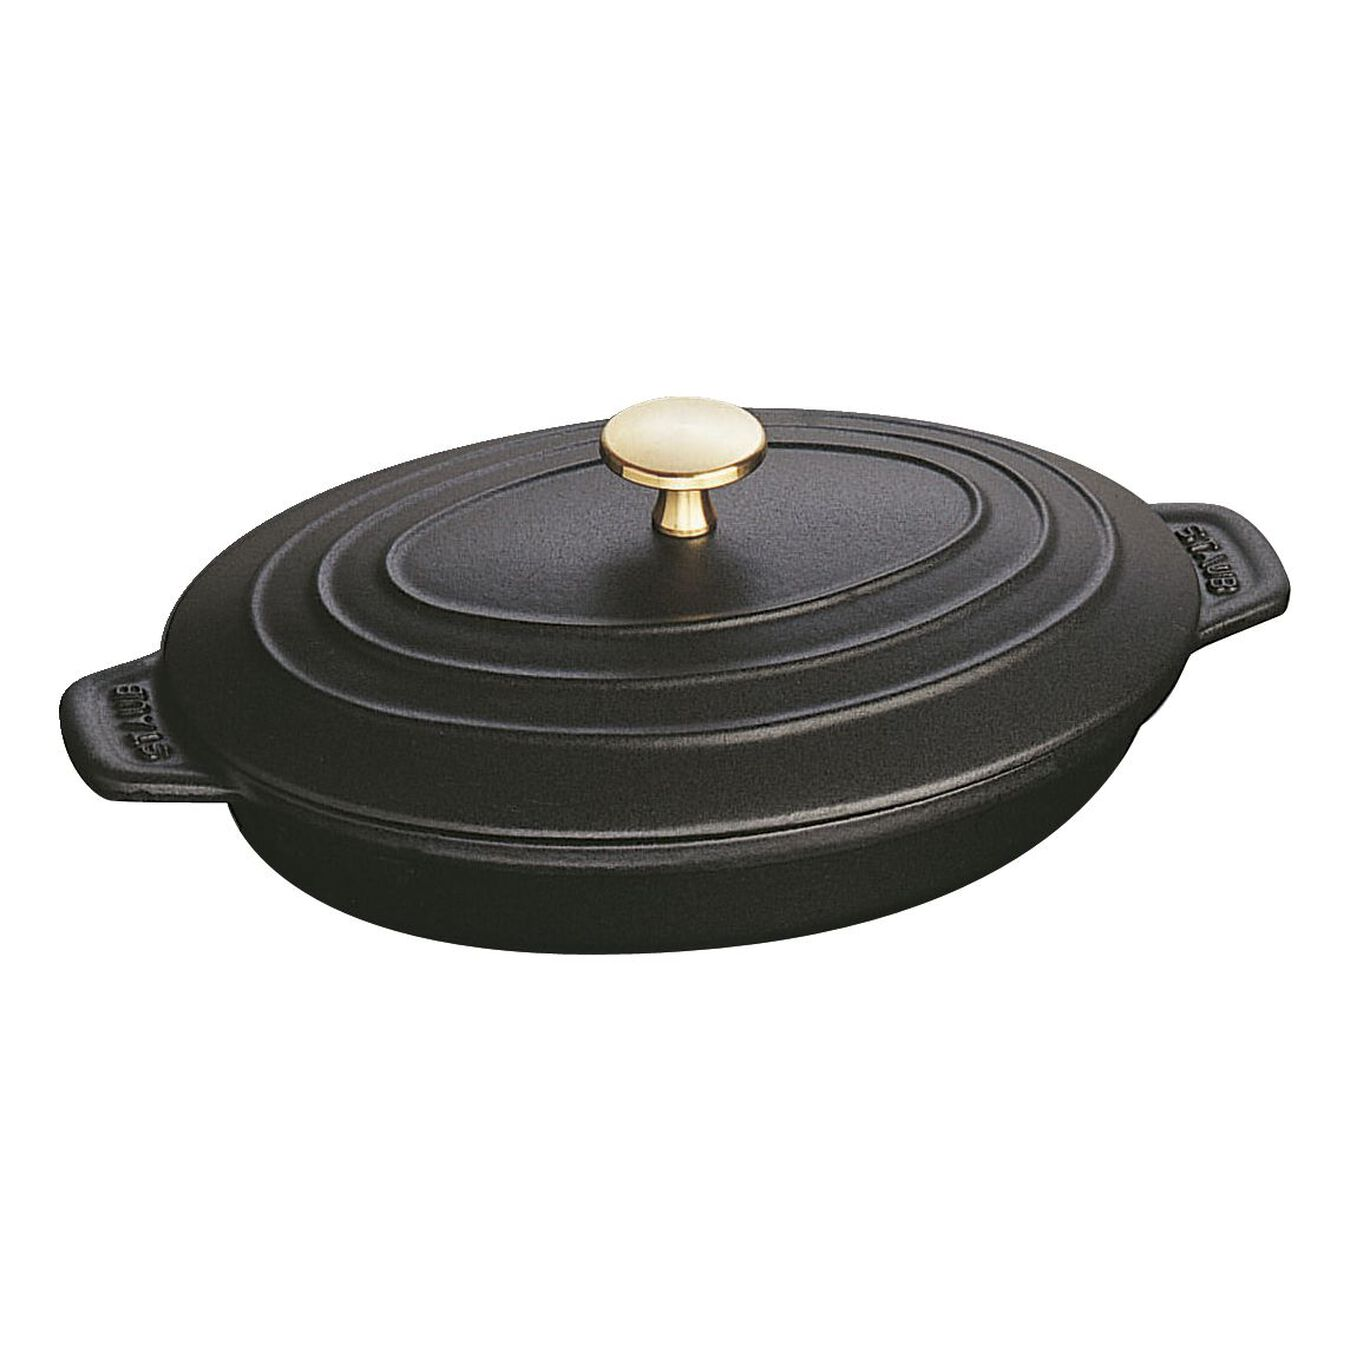 Cast iron oval Oven dish with lid, Black,,large 2